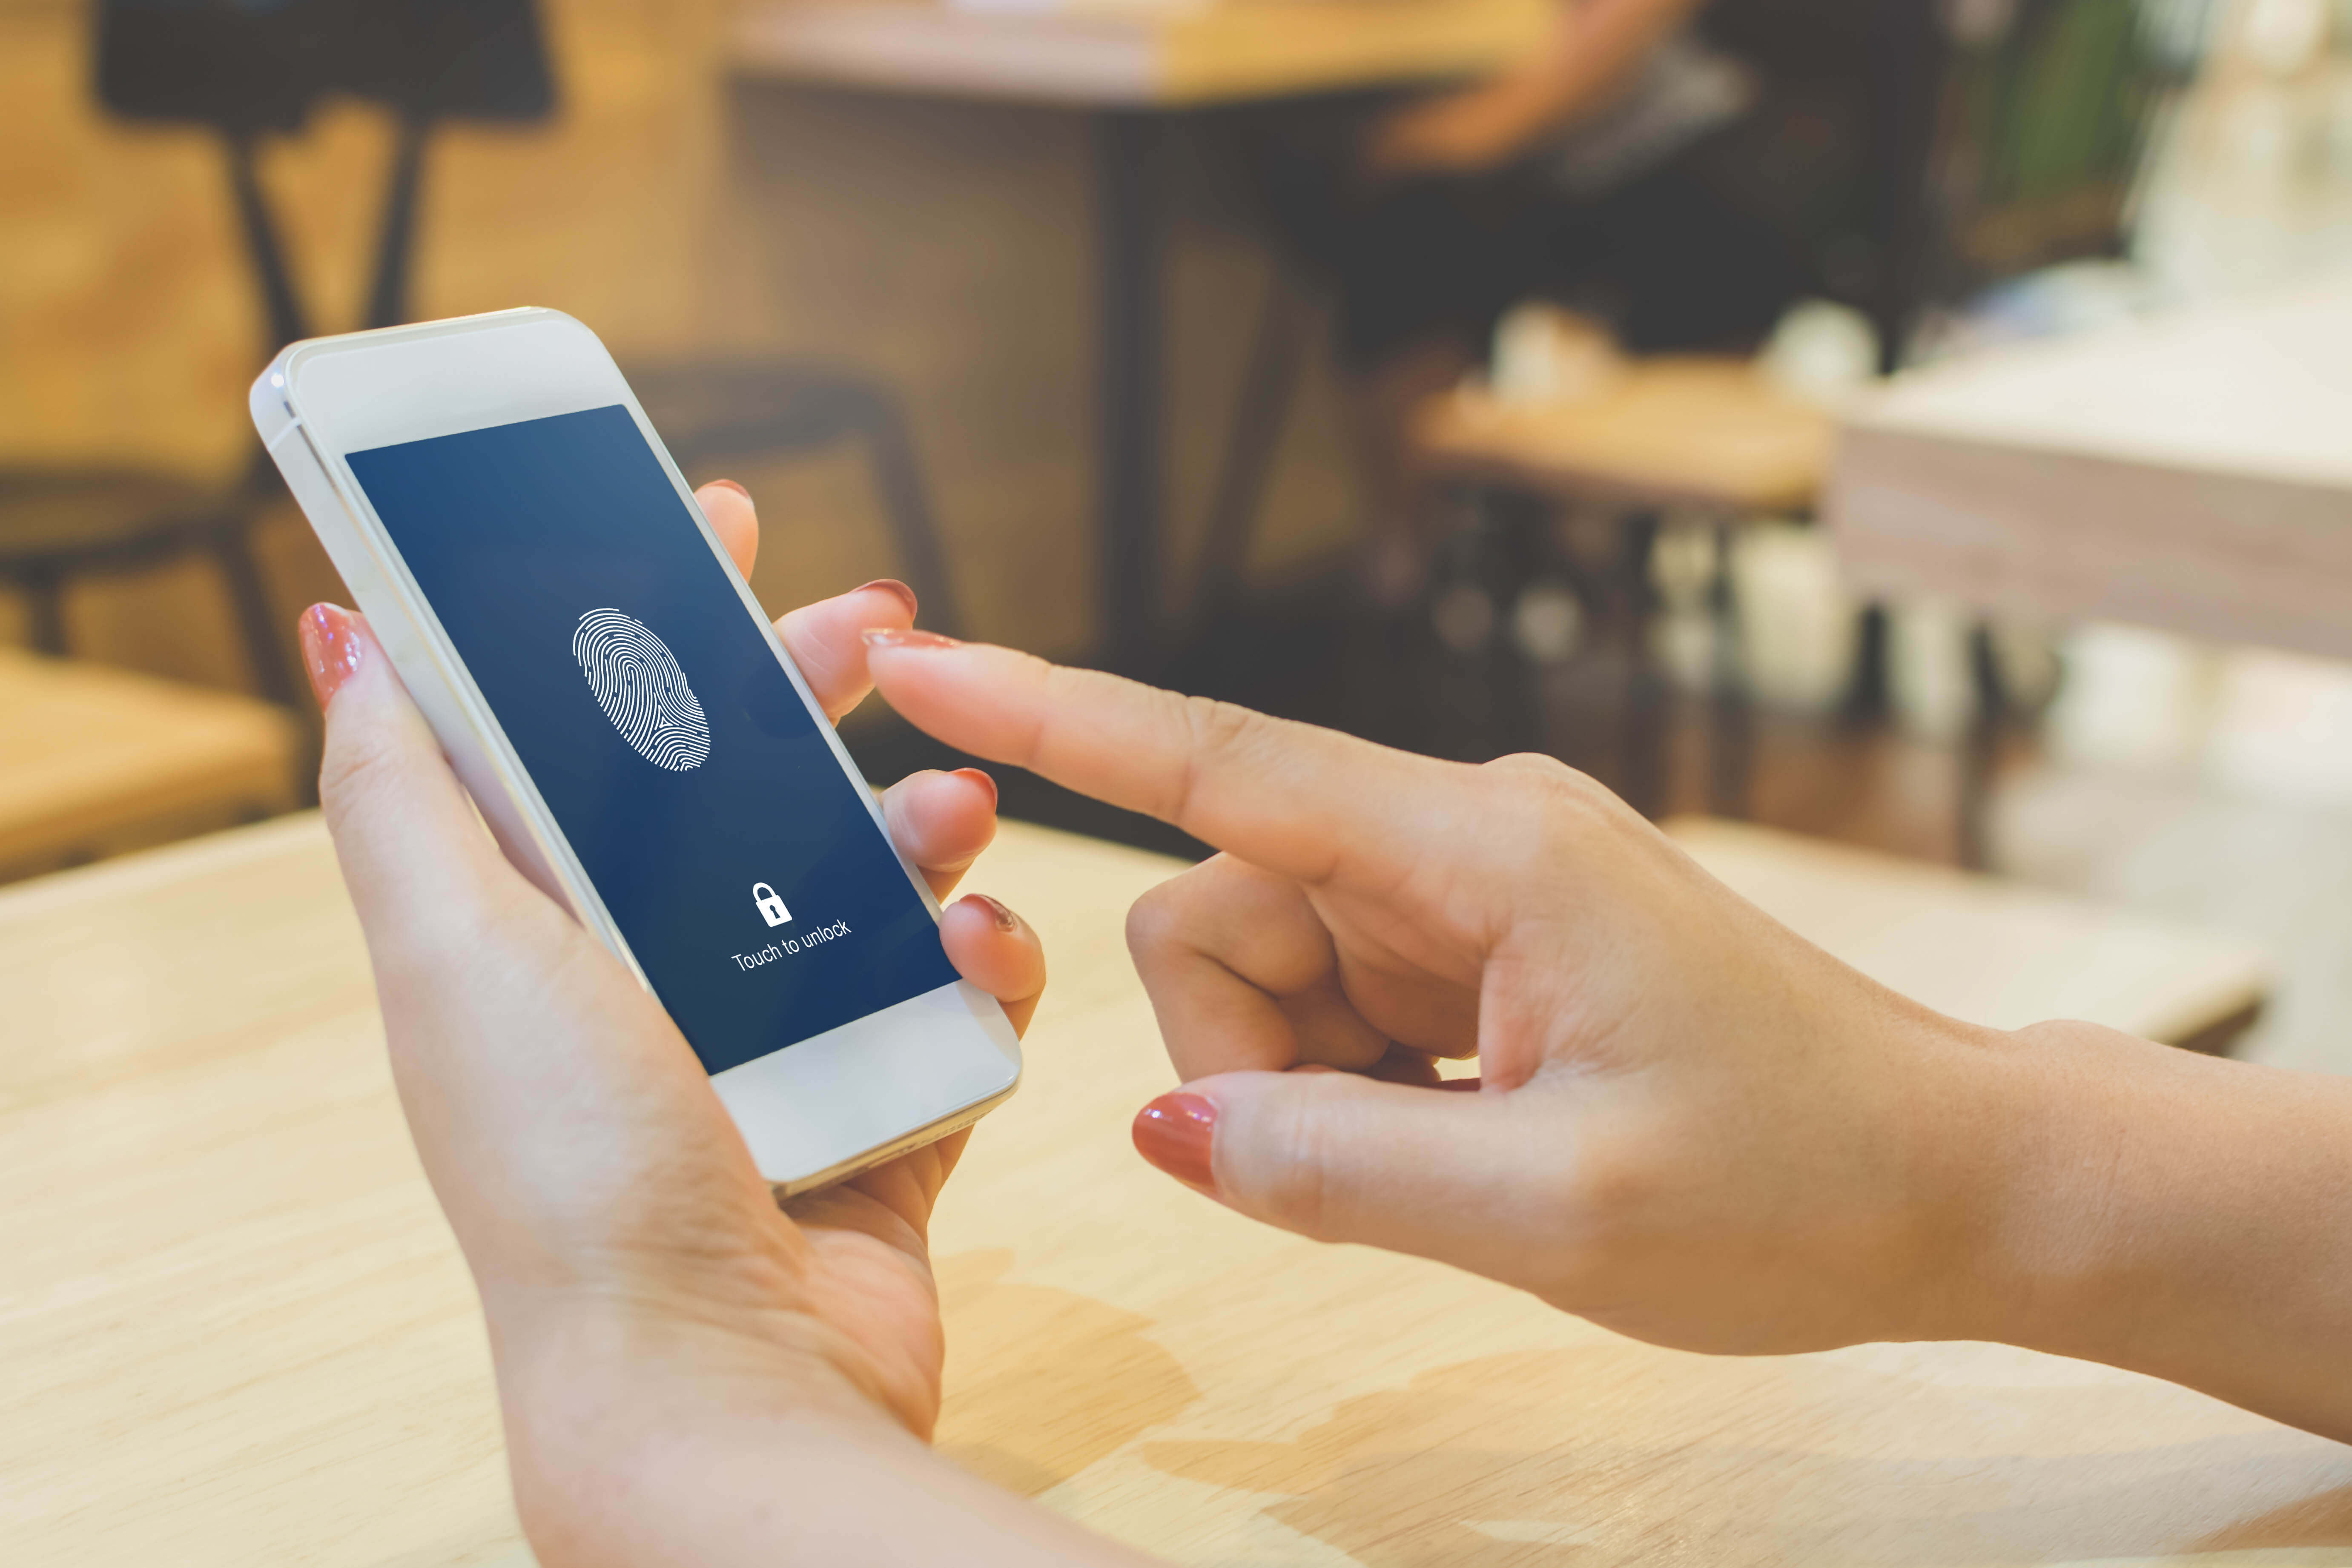 Oman bank introduces biometric features for mobile services